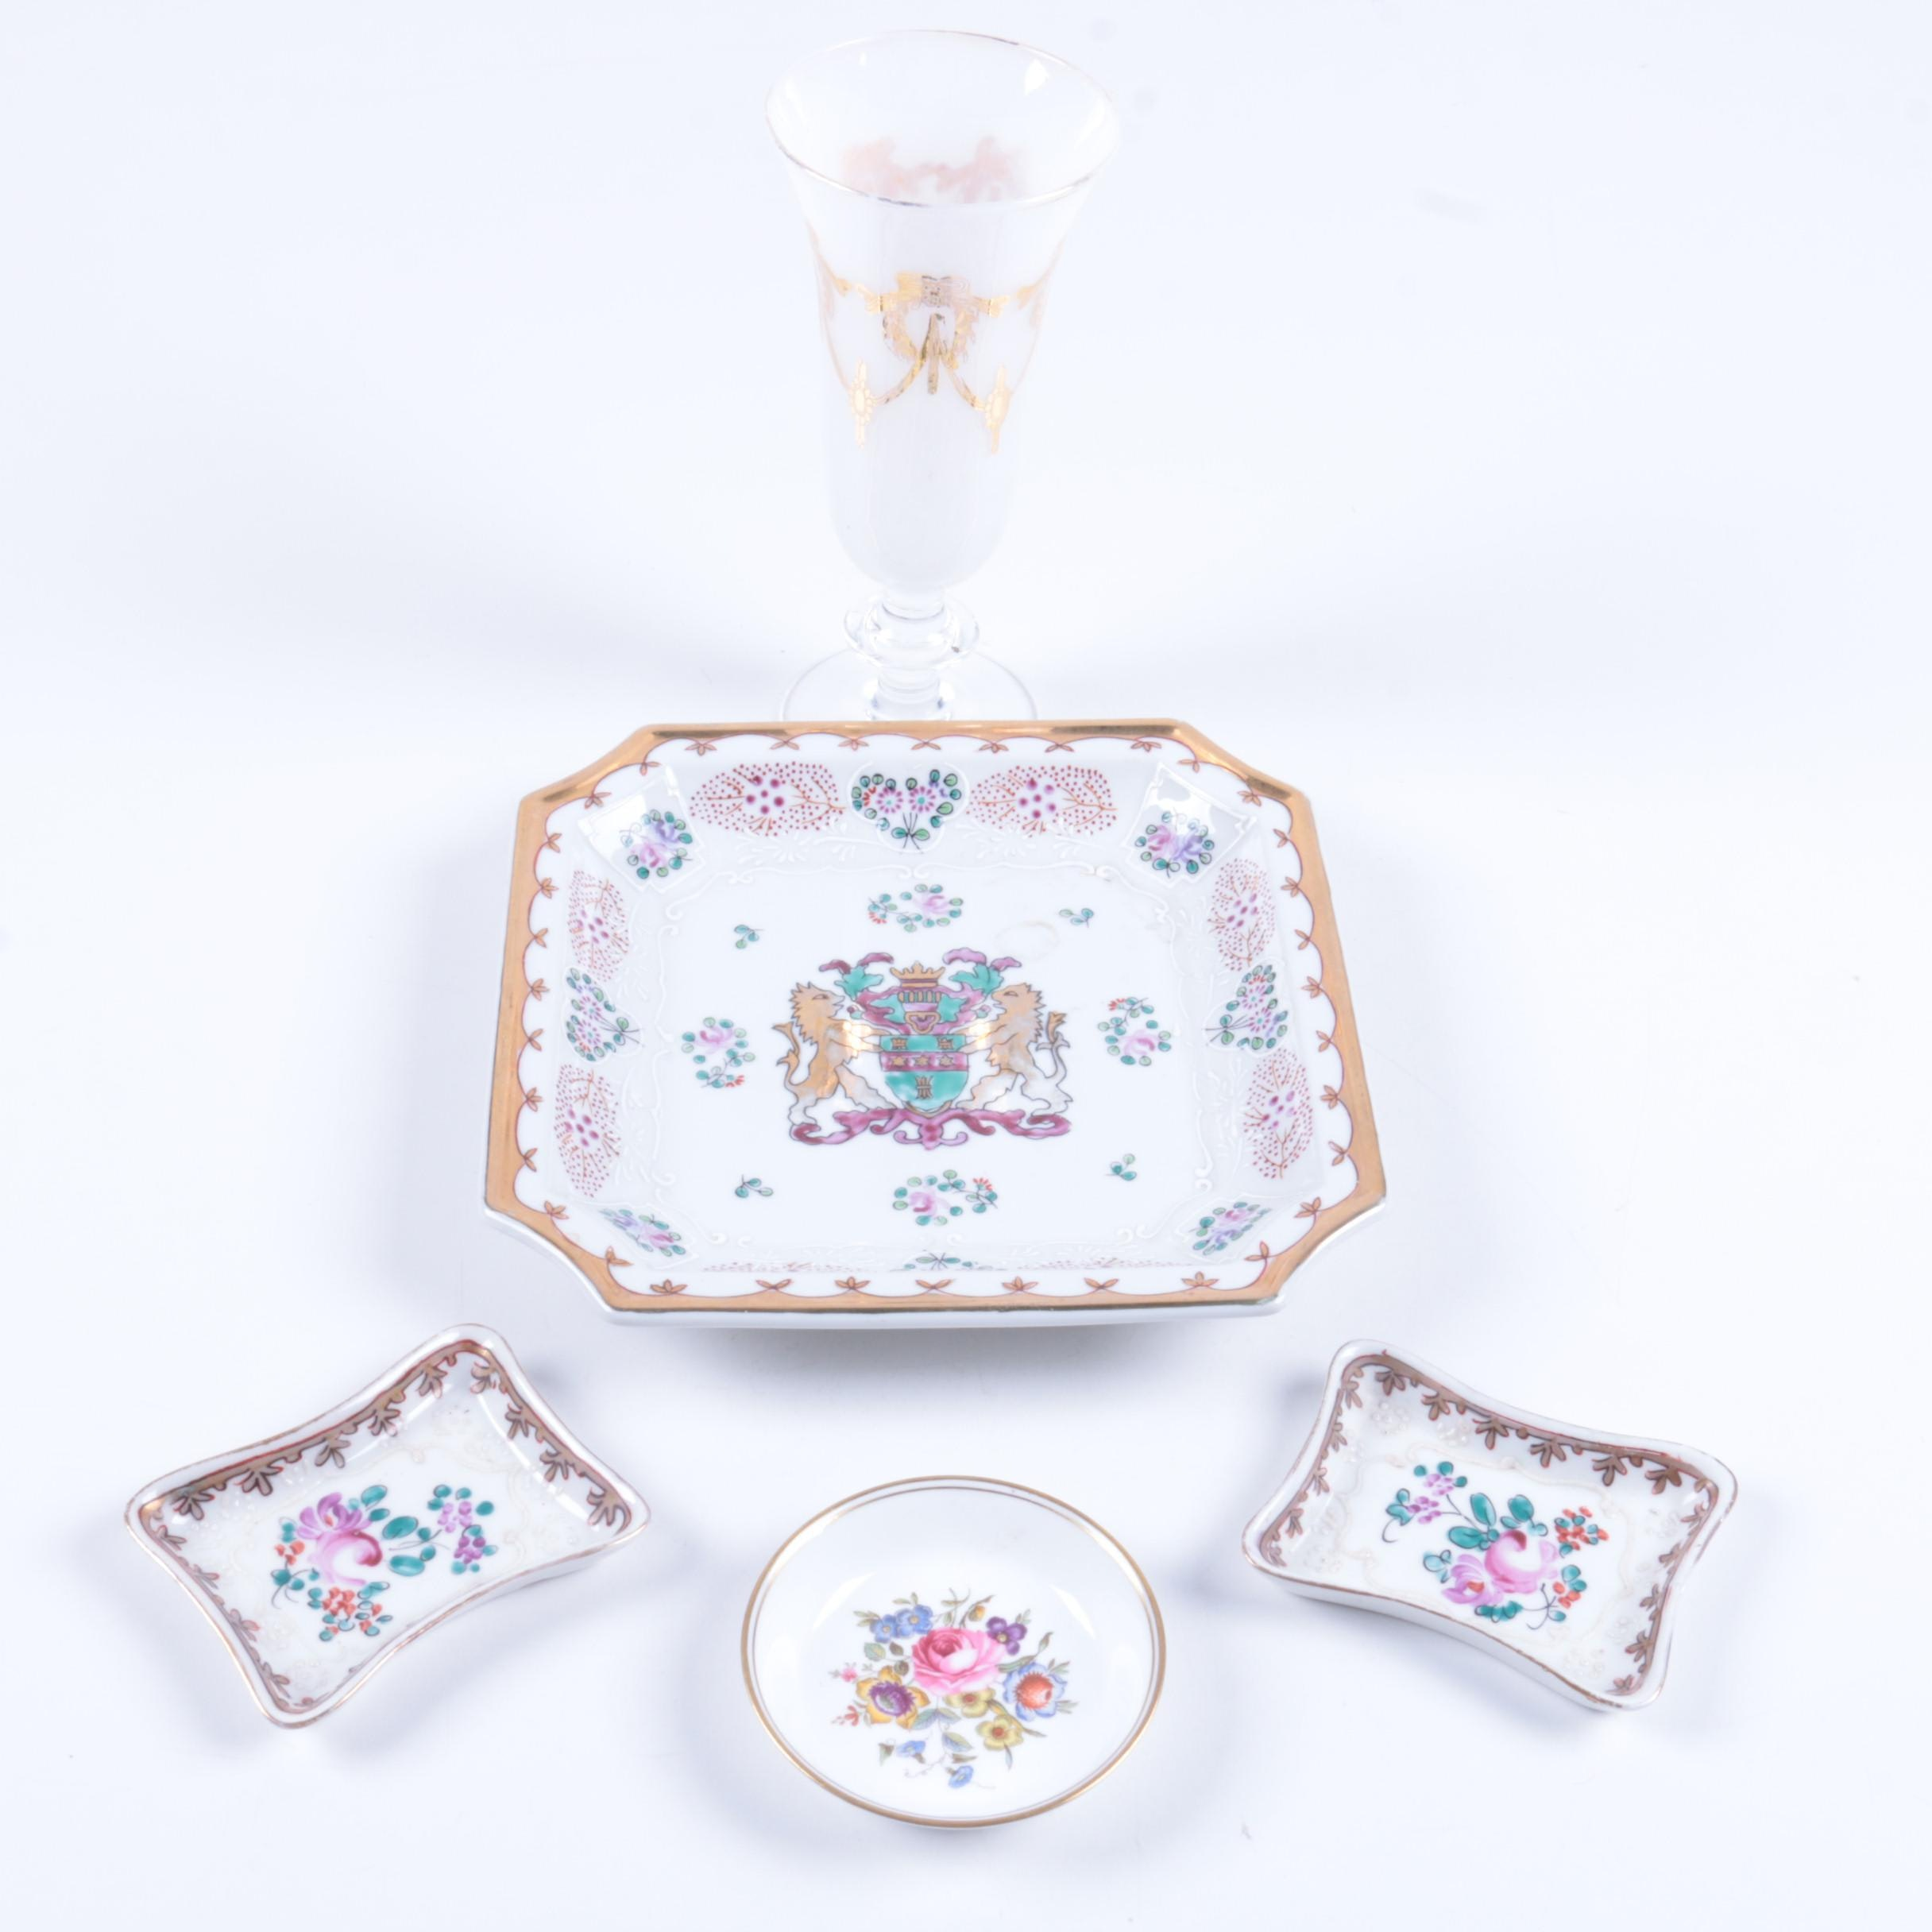 Vintage Serveware Including Royal Worcester